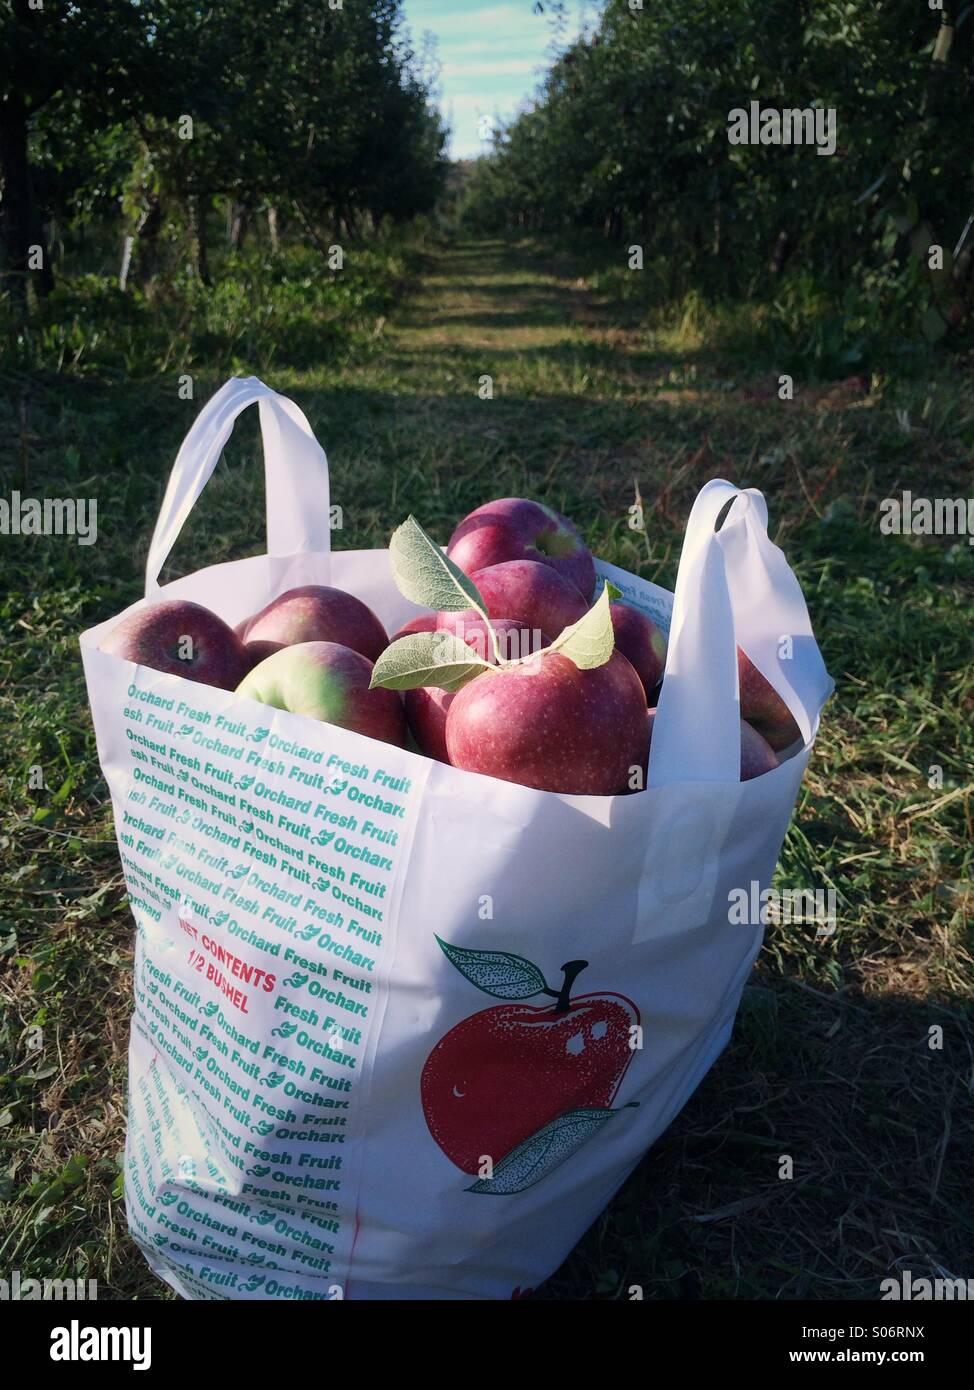 A bag of apples at an apple picking orchard in the Catskills